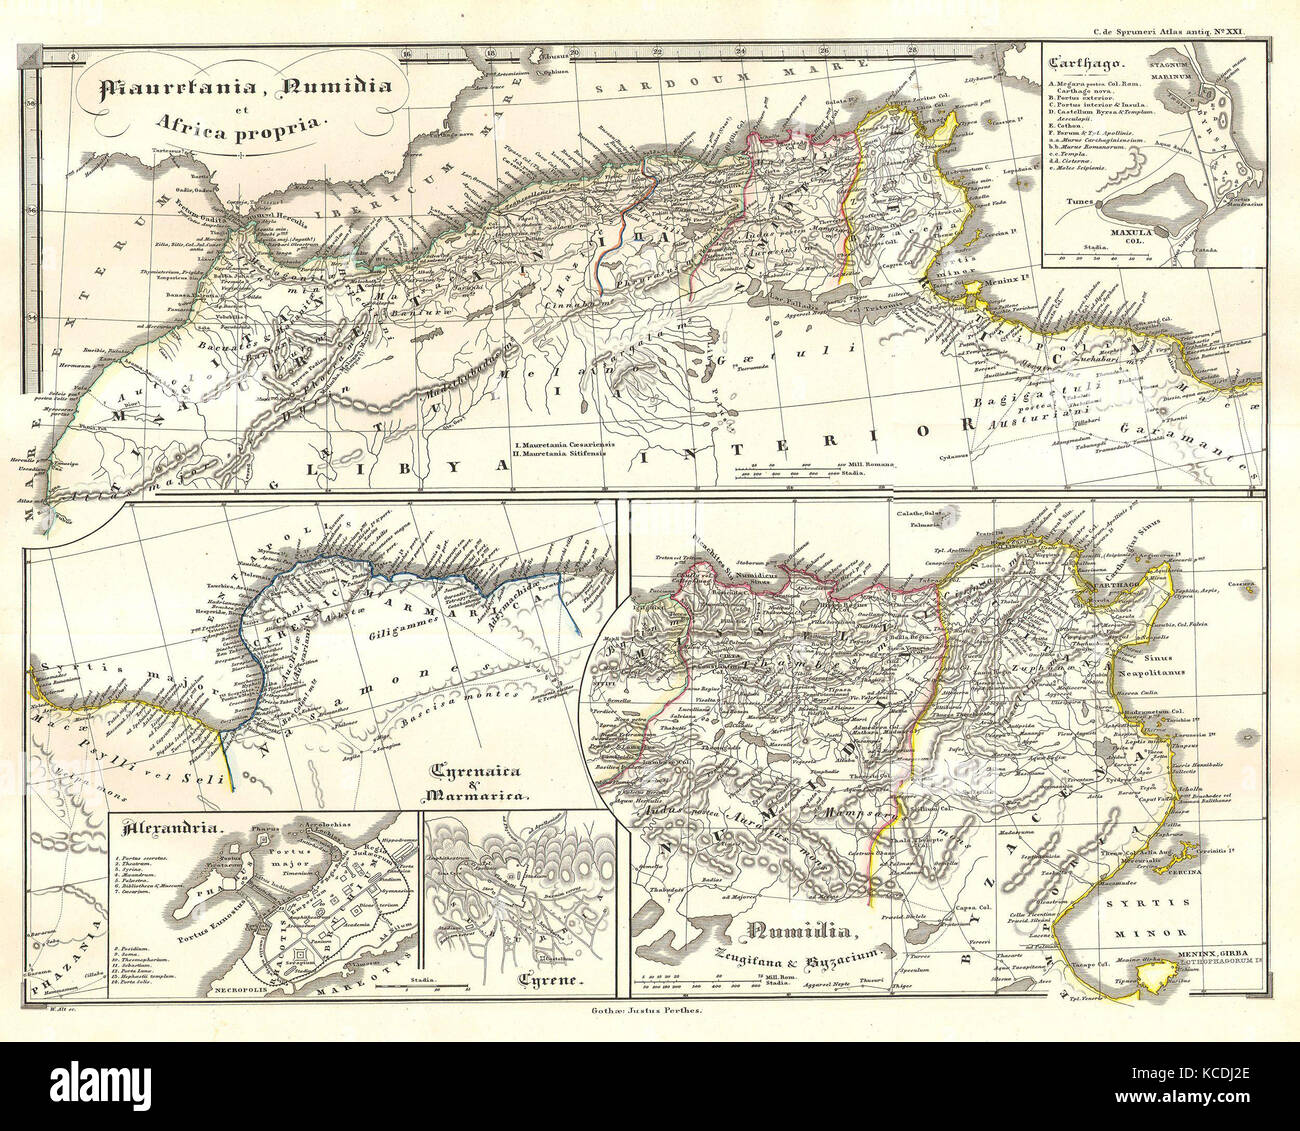 1855, Spruneri Map of North Africa in Ancient Times, Carthage, Numidia, Alexandria - Stock Image